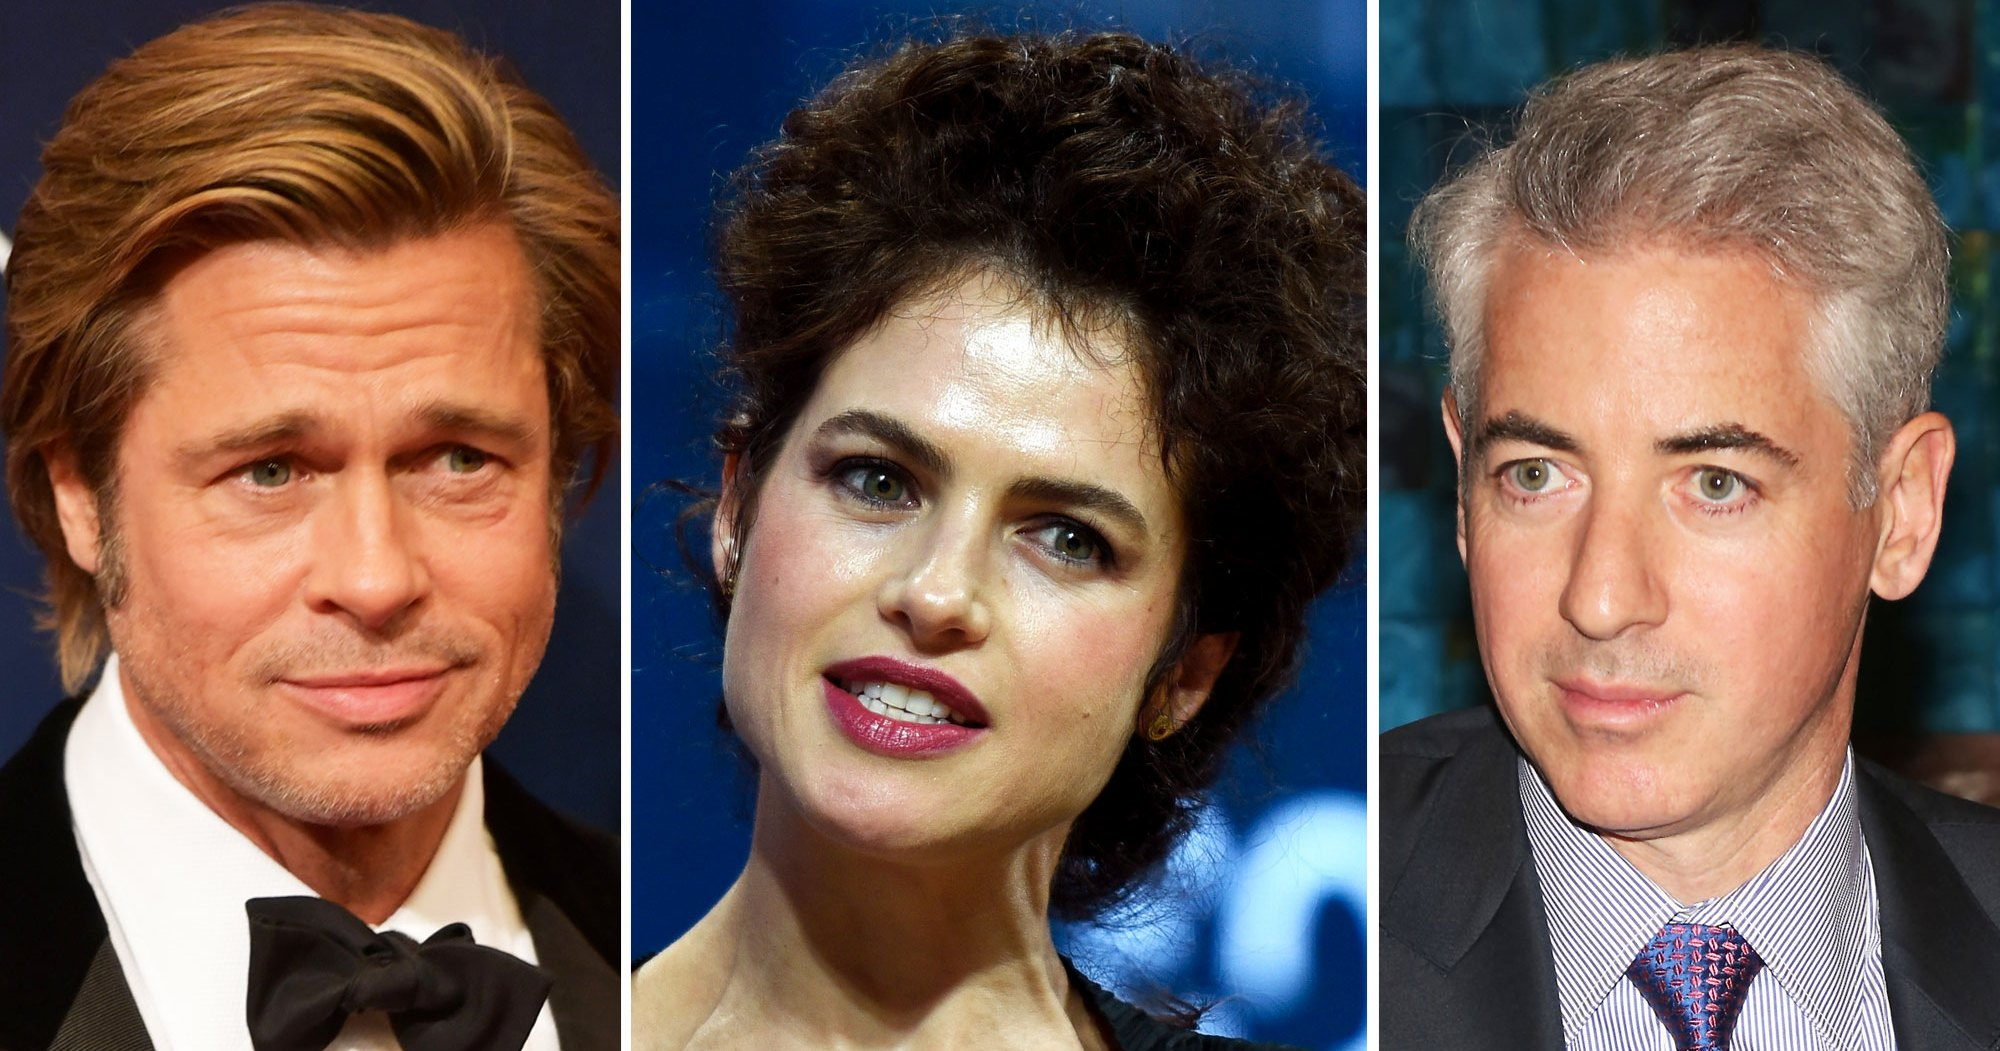 Brad Pitt's MIT Professor Crush Neri Oxman Is Married and Expecting Her First Child